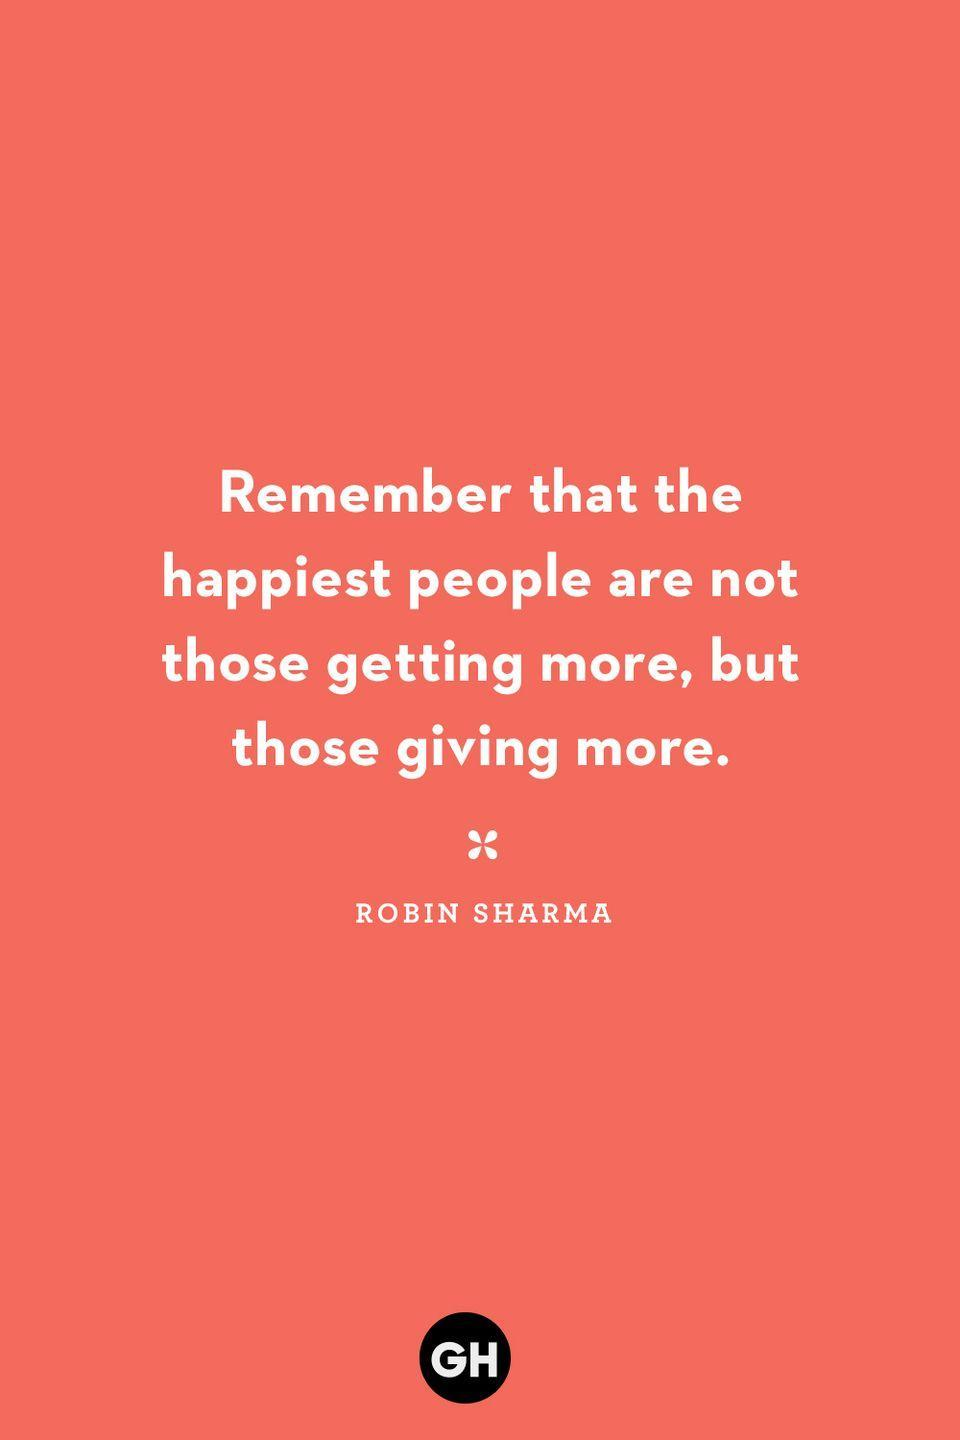 <p>Remember that the happiest people are not those getting more, but those giving more.</p>